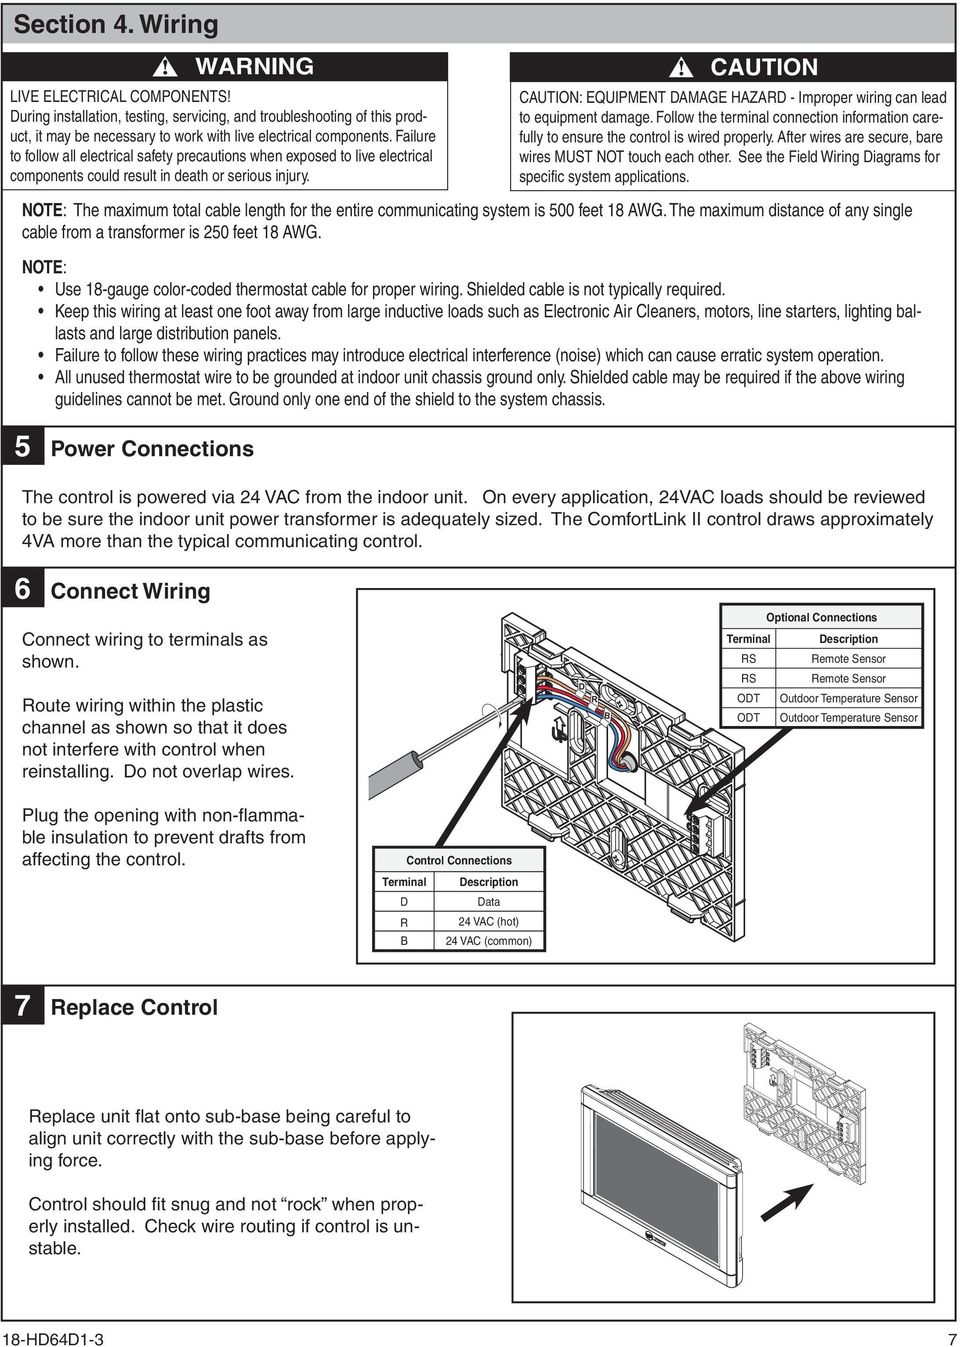 Comfortlink Ii Installation Guide 3 Zone Panel Optional 4 Electrical Connections And Wiring Suggested Diagram With Safety Caution Equipment Damage Hazard Improper Can Lead To